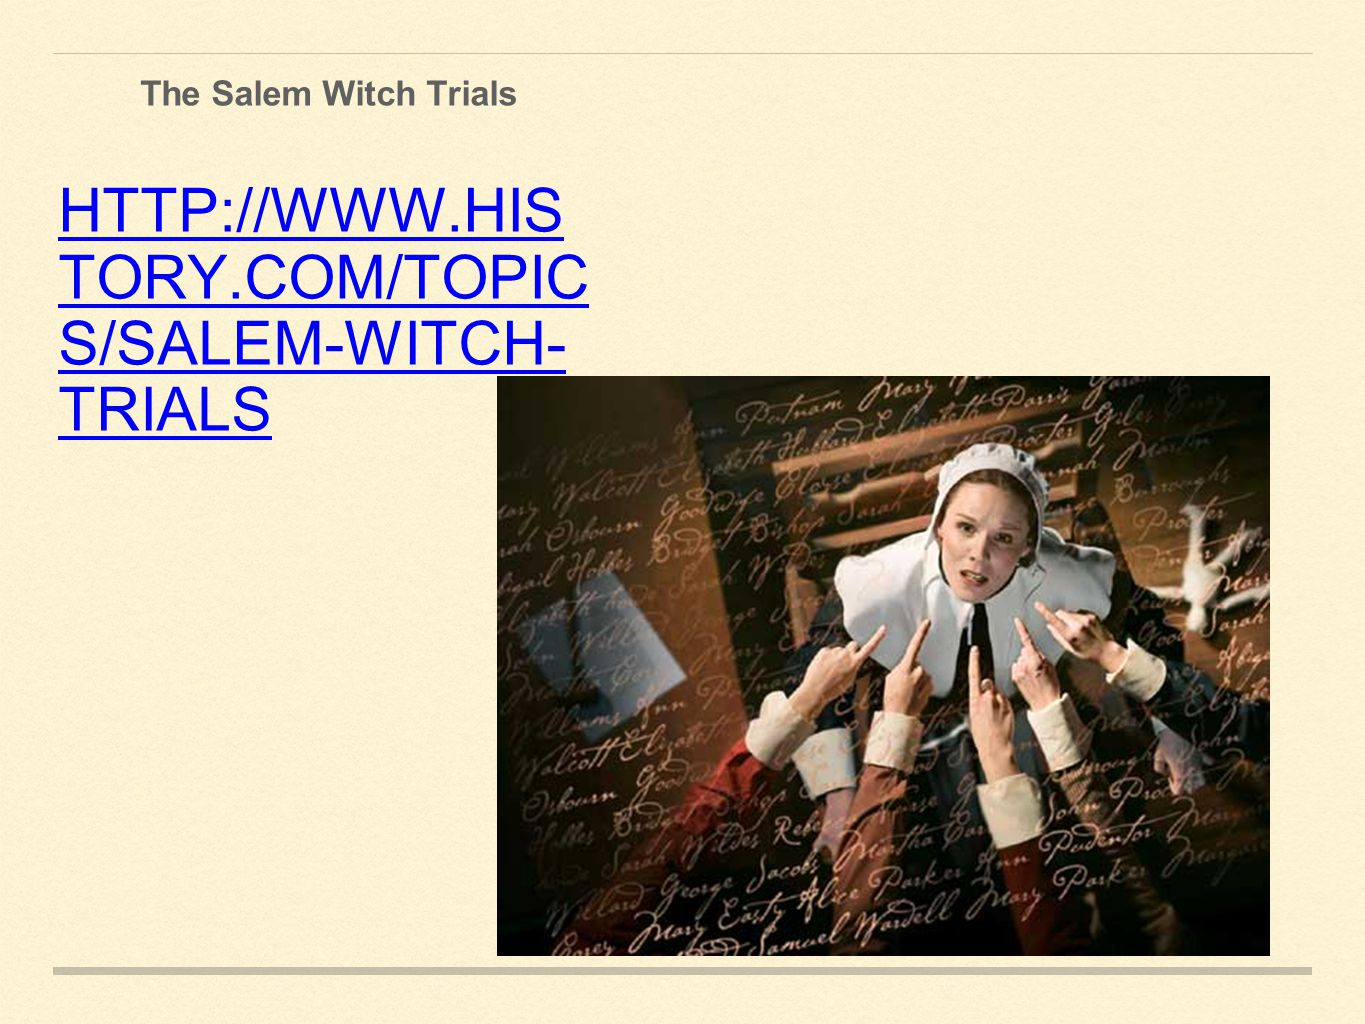 The Salem Witch Trials HTTP://WWW.HIS TORY.COM/TOPIC S/SALEM-WITCH- TRIALS